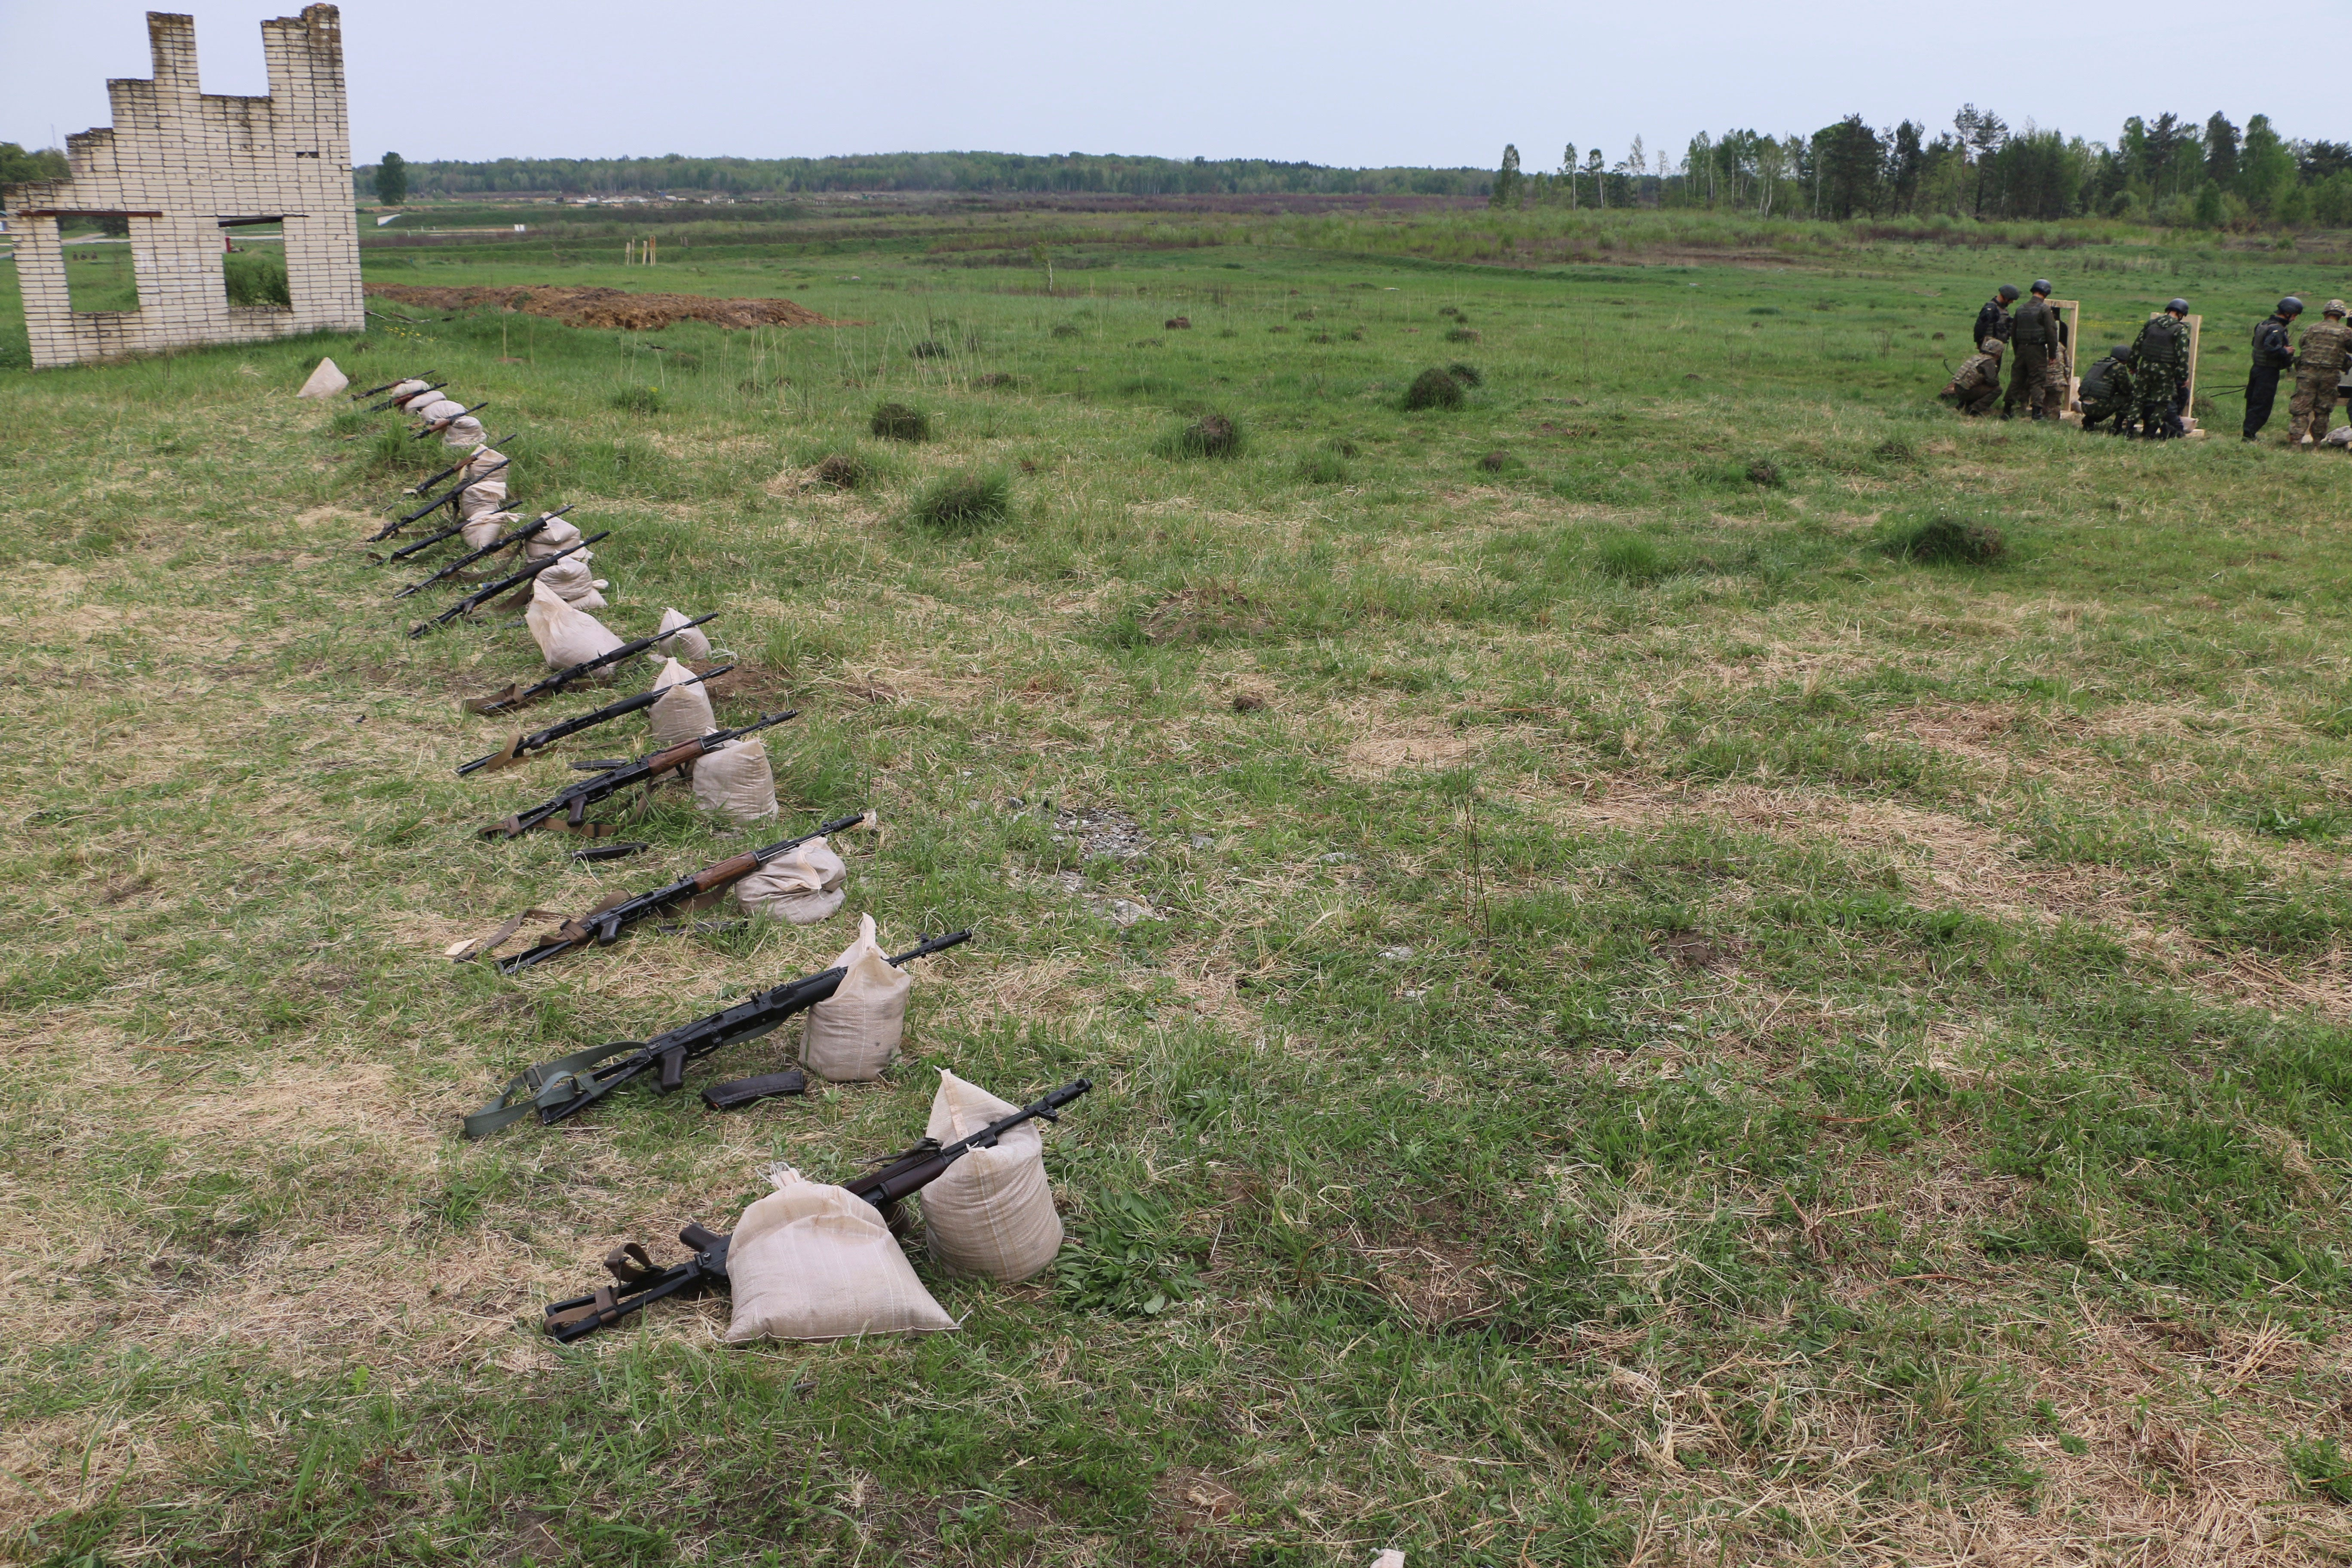 Kalashnikovs lined up on the firing range at the U.S. Army's training mission in western Ukraine.